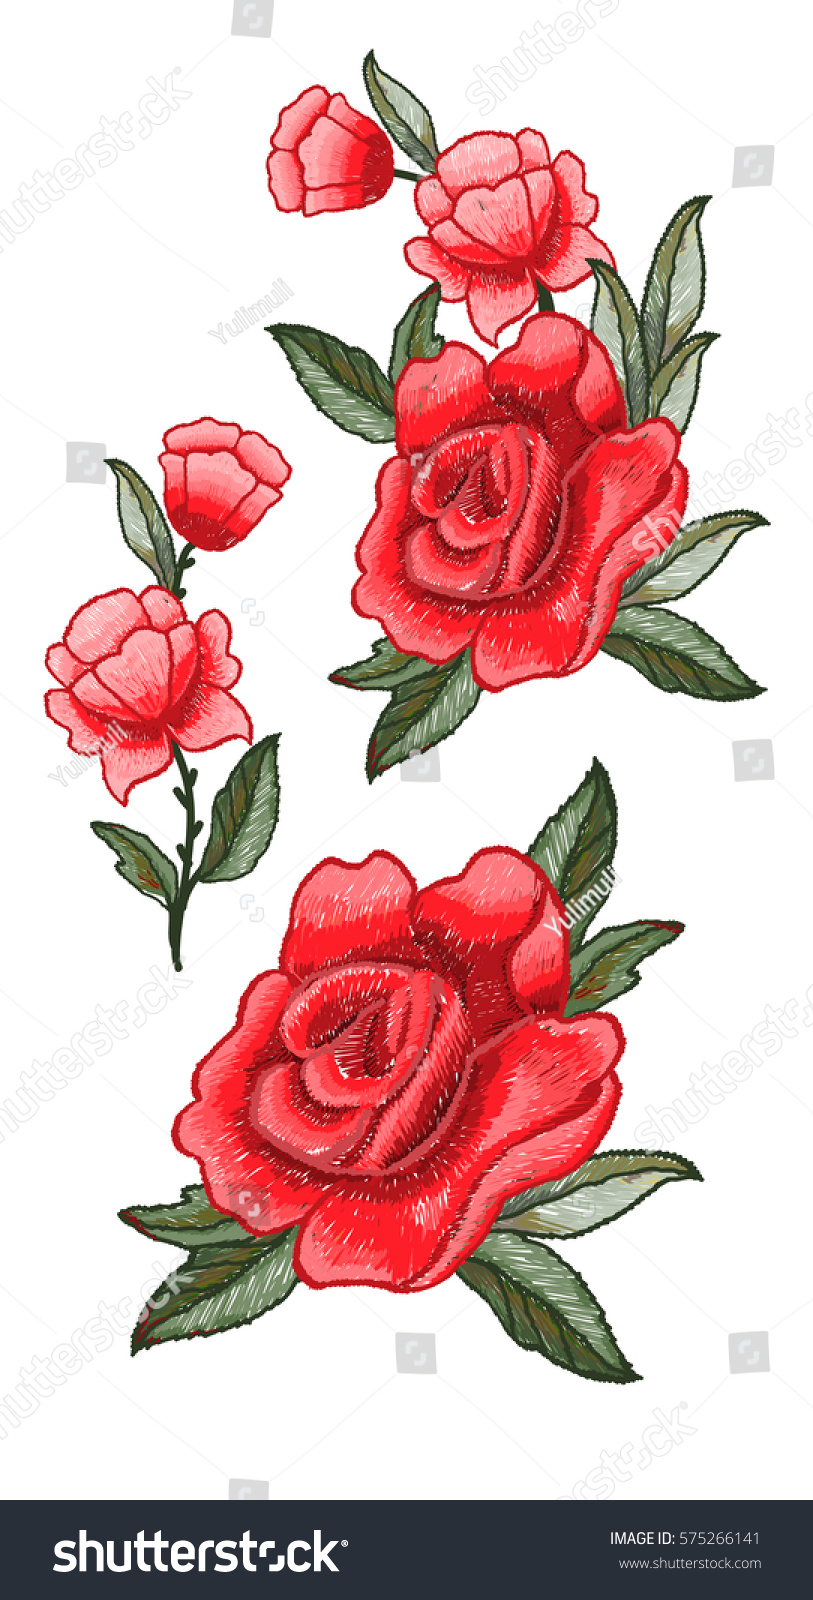 Beautiful flowers embroidery rose embroidery vector stock photo beautiful flowers embroidery rose embroidery vector for textile design izmirmasajfo